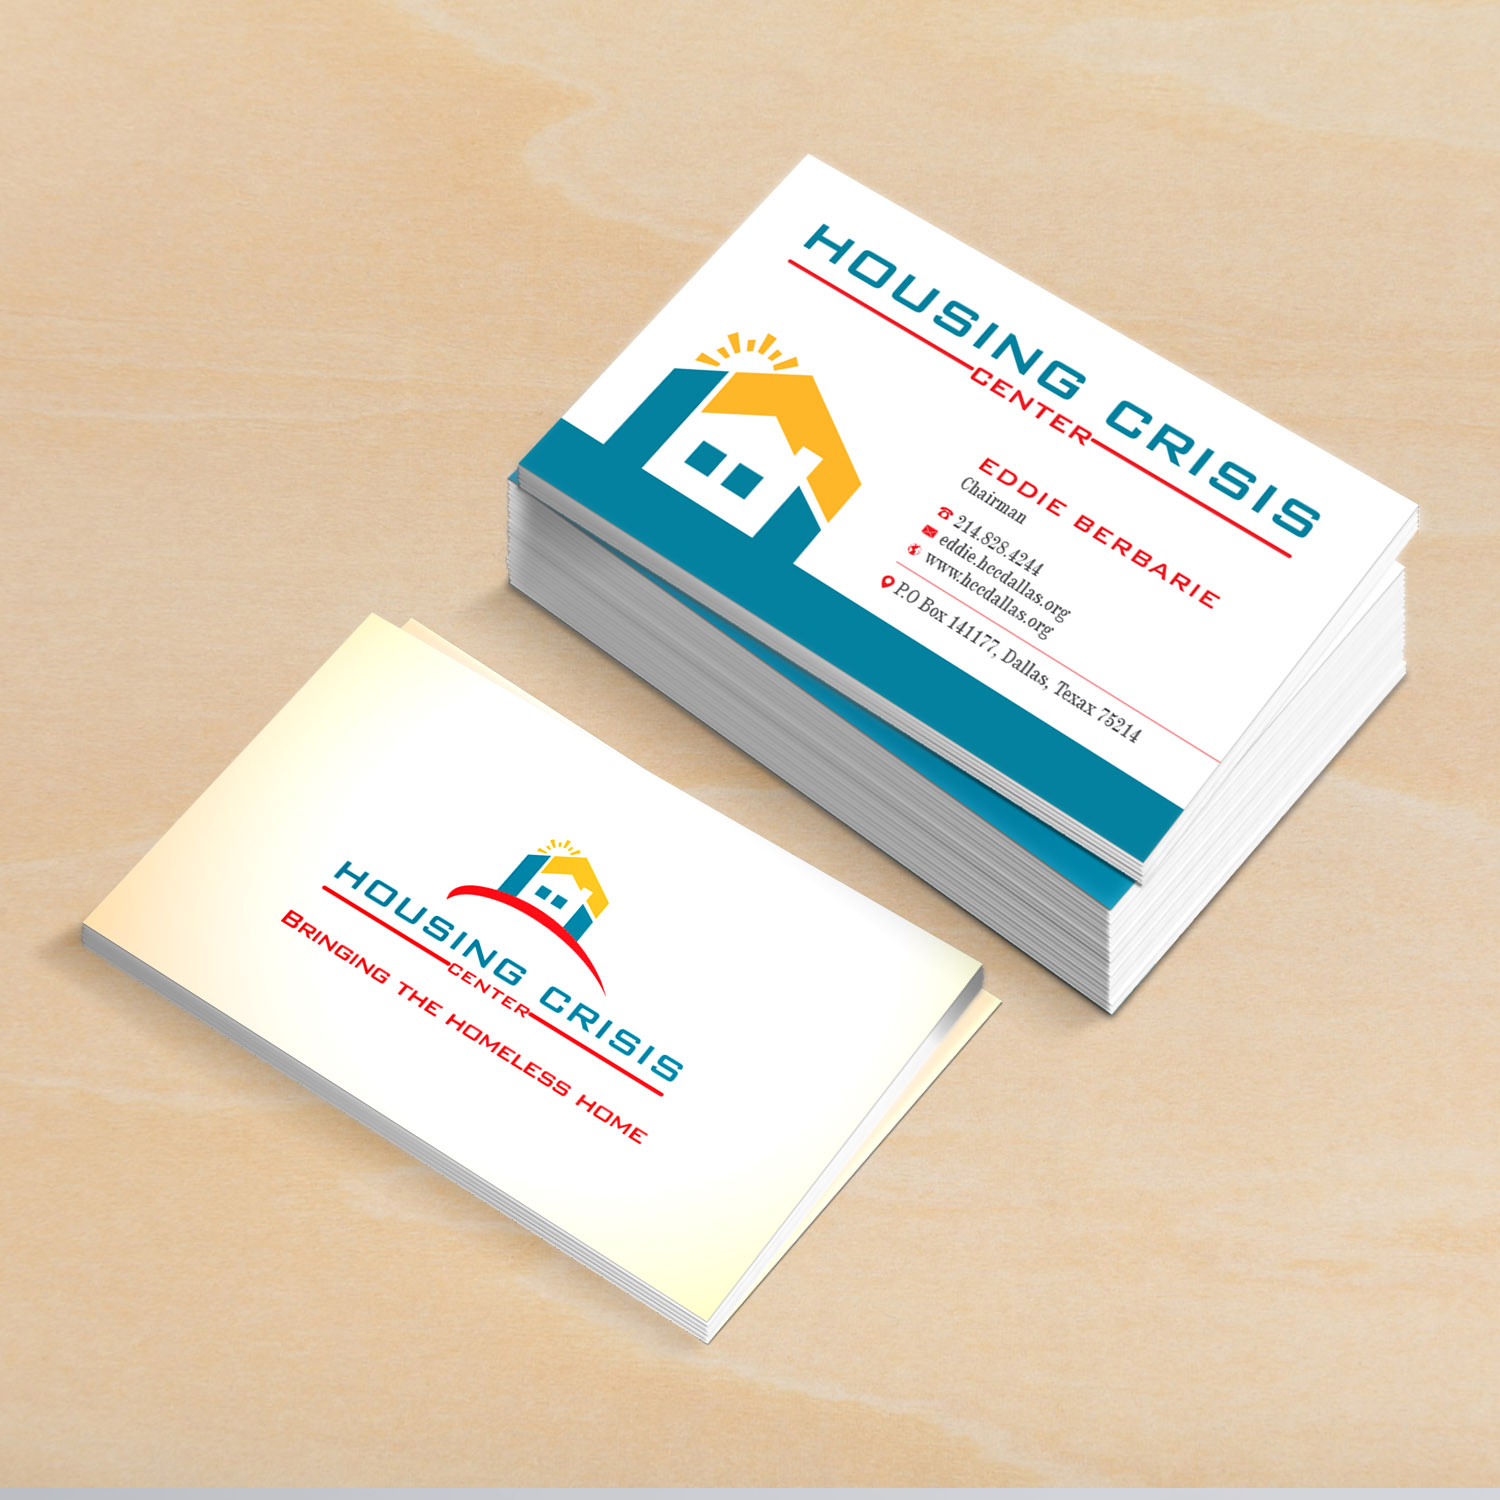 Colorful serious non profit business card design for housing business card design by creative jiniya for housing crisis center design 17951478 colourmoves